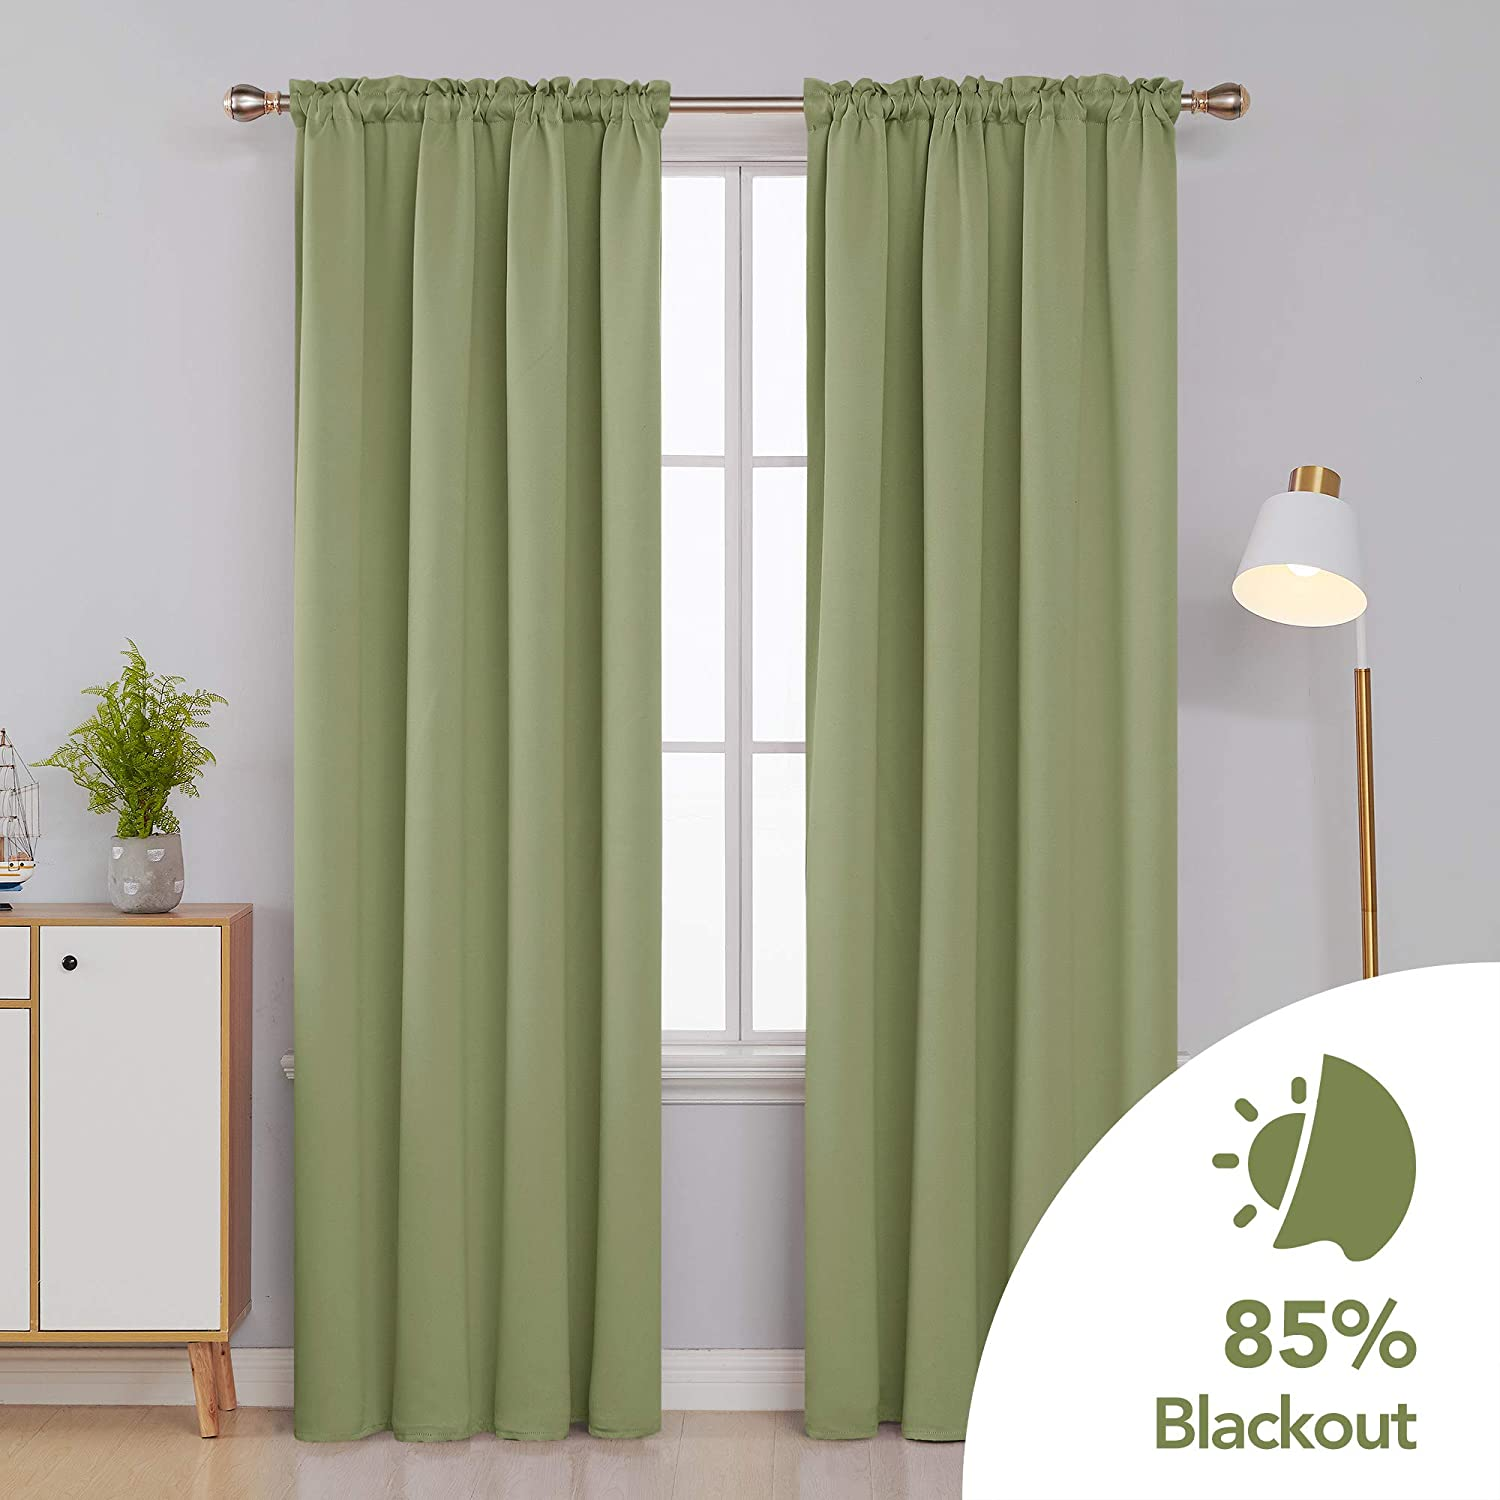 Deconovo Black Blackout Curtains Thermal Insulated Rod Pocket Curtain Panels for Bedroom 42 W x 63 L Black 1 Panel